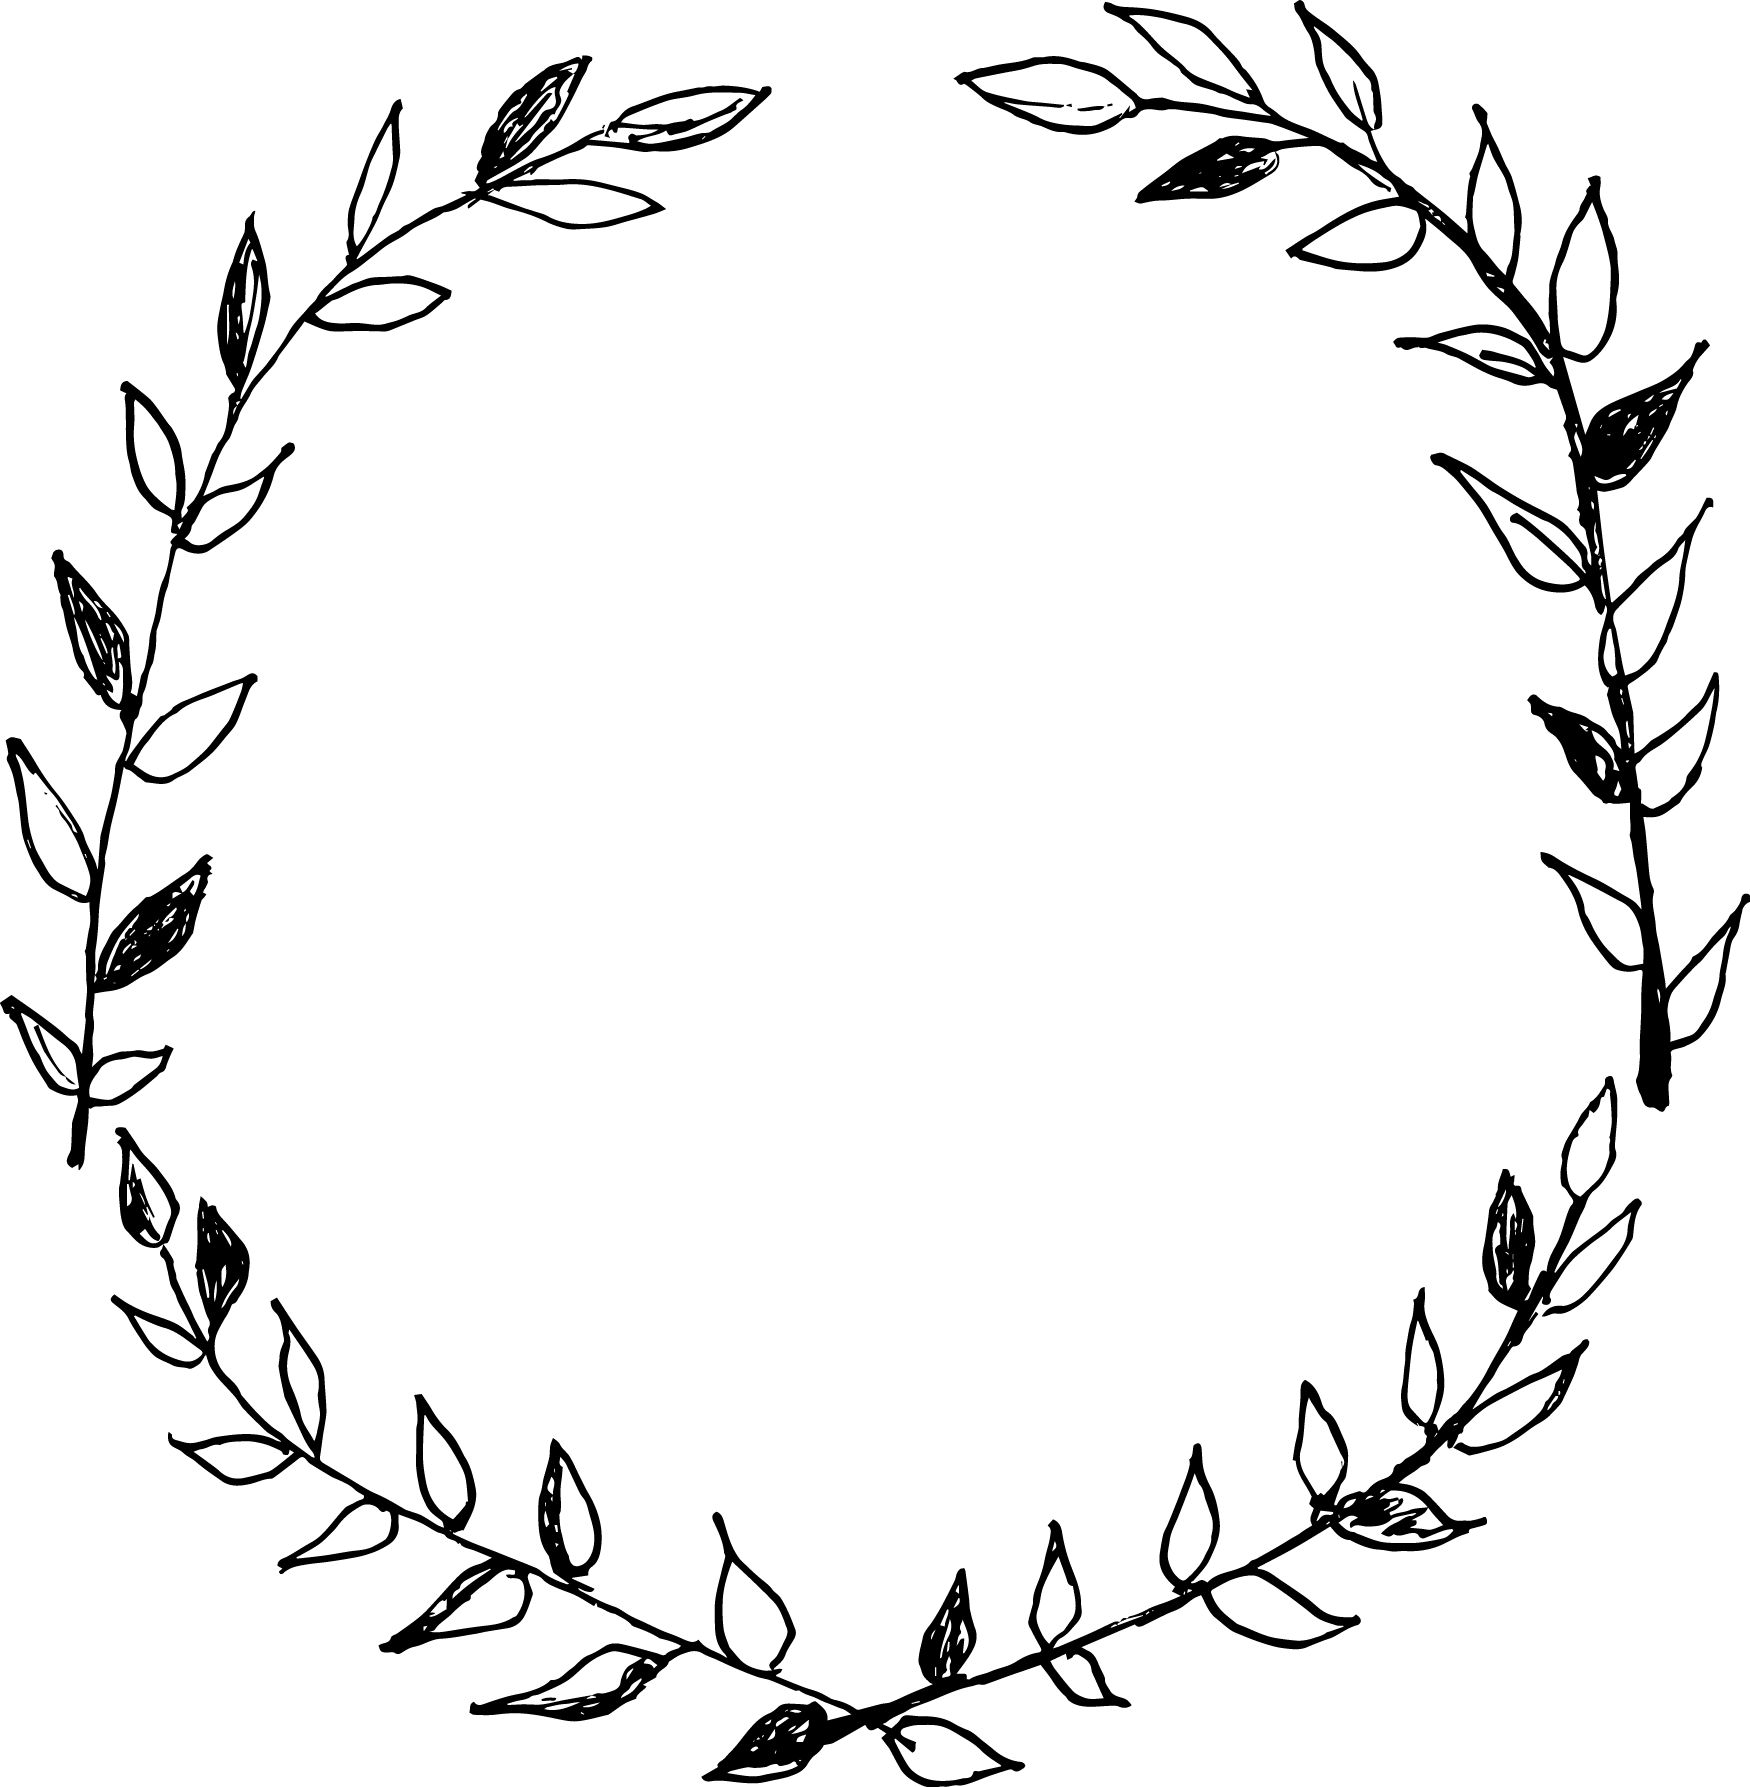 clipart library Branch wreath clipart. Drawing at getdrawings com